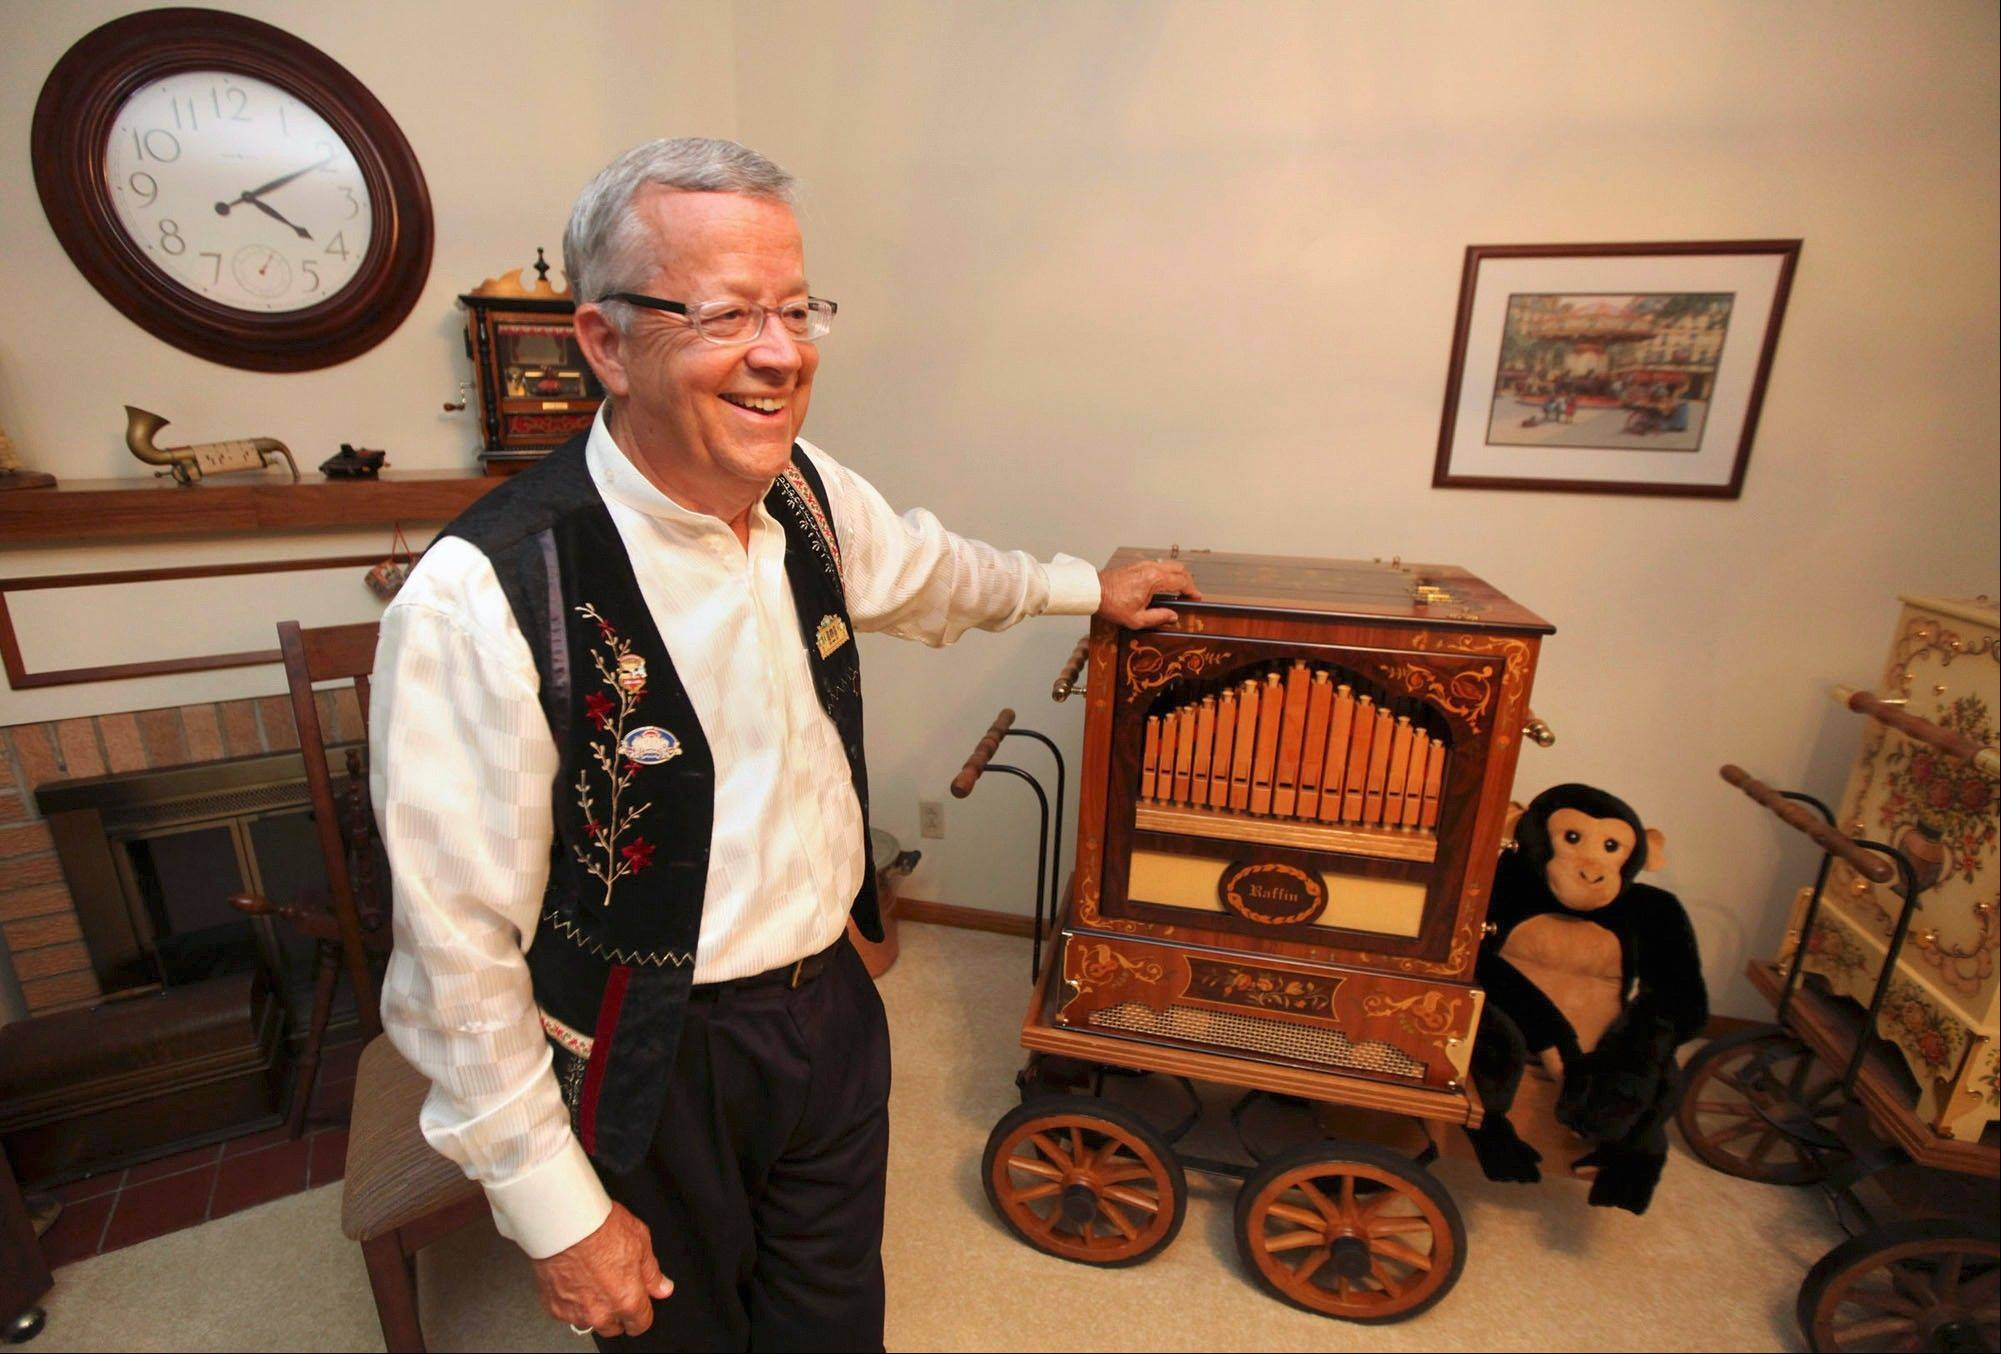 David Mahr smiles as he talks about his Raffin street organ at his home in Decatur, Ill. Mahr, a member of the Carousel Organ Association of America and collector of hand-cranked street organs, nickelodeons, player pianos and all forms of mechanical music, has brought this organ with him to about 35 different festivals across the United States.